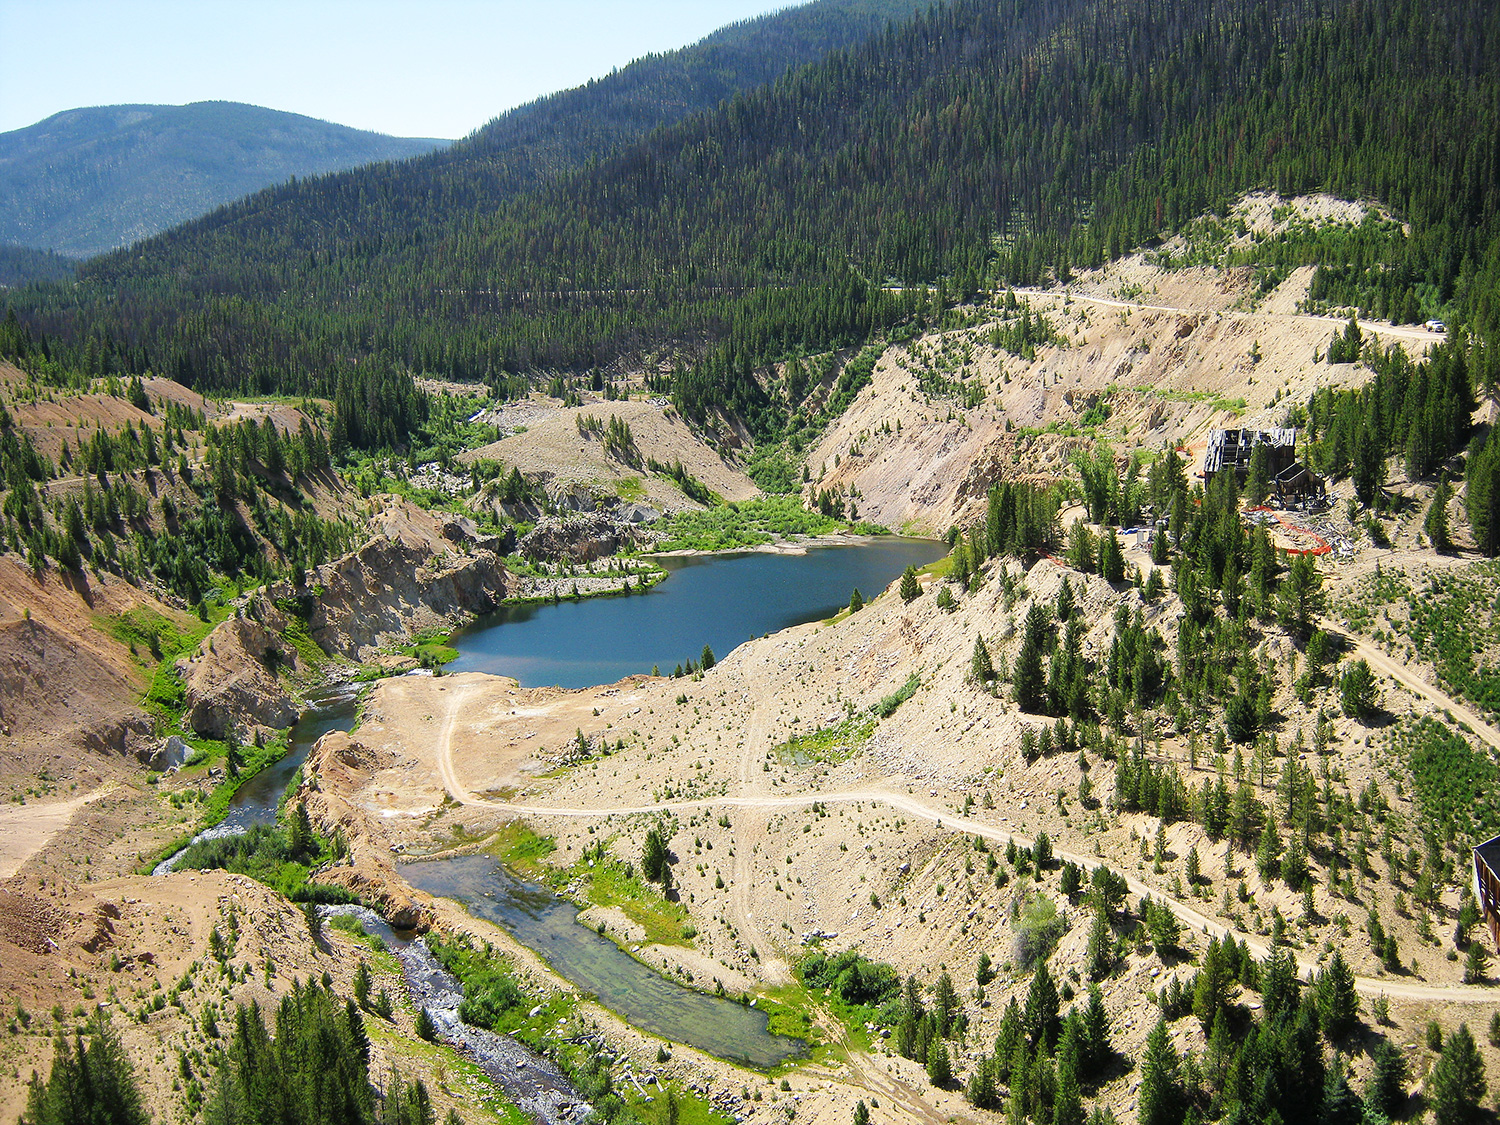 Photo is a wide shot showing the mining district and specifically the Yellowpine pit.